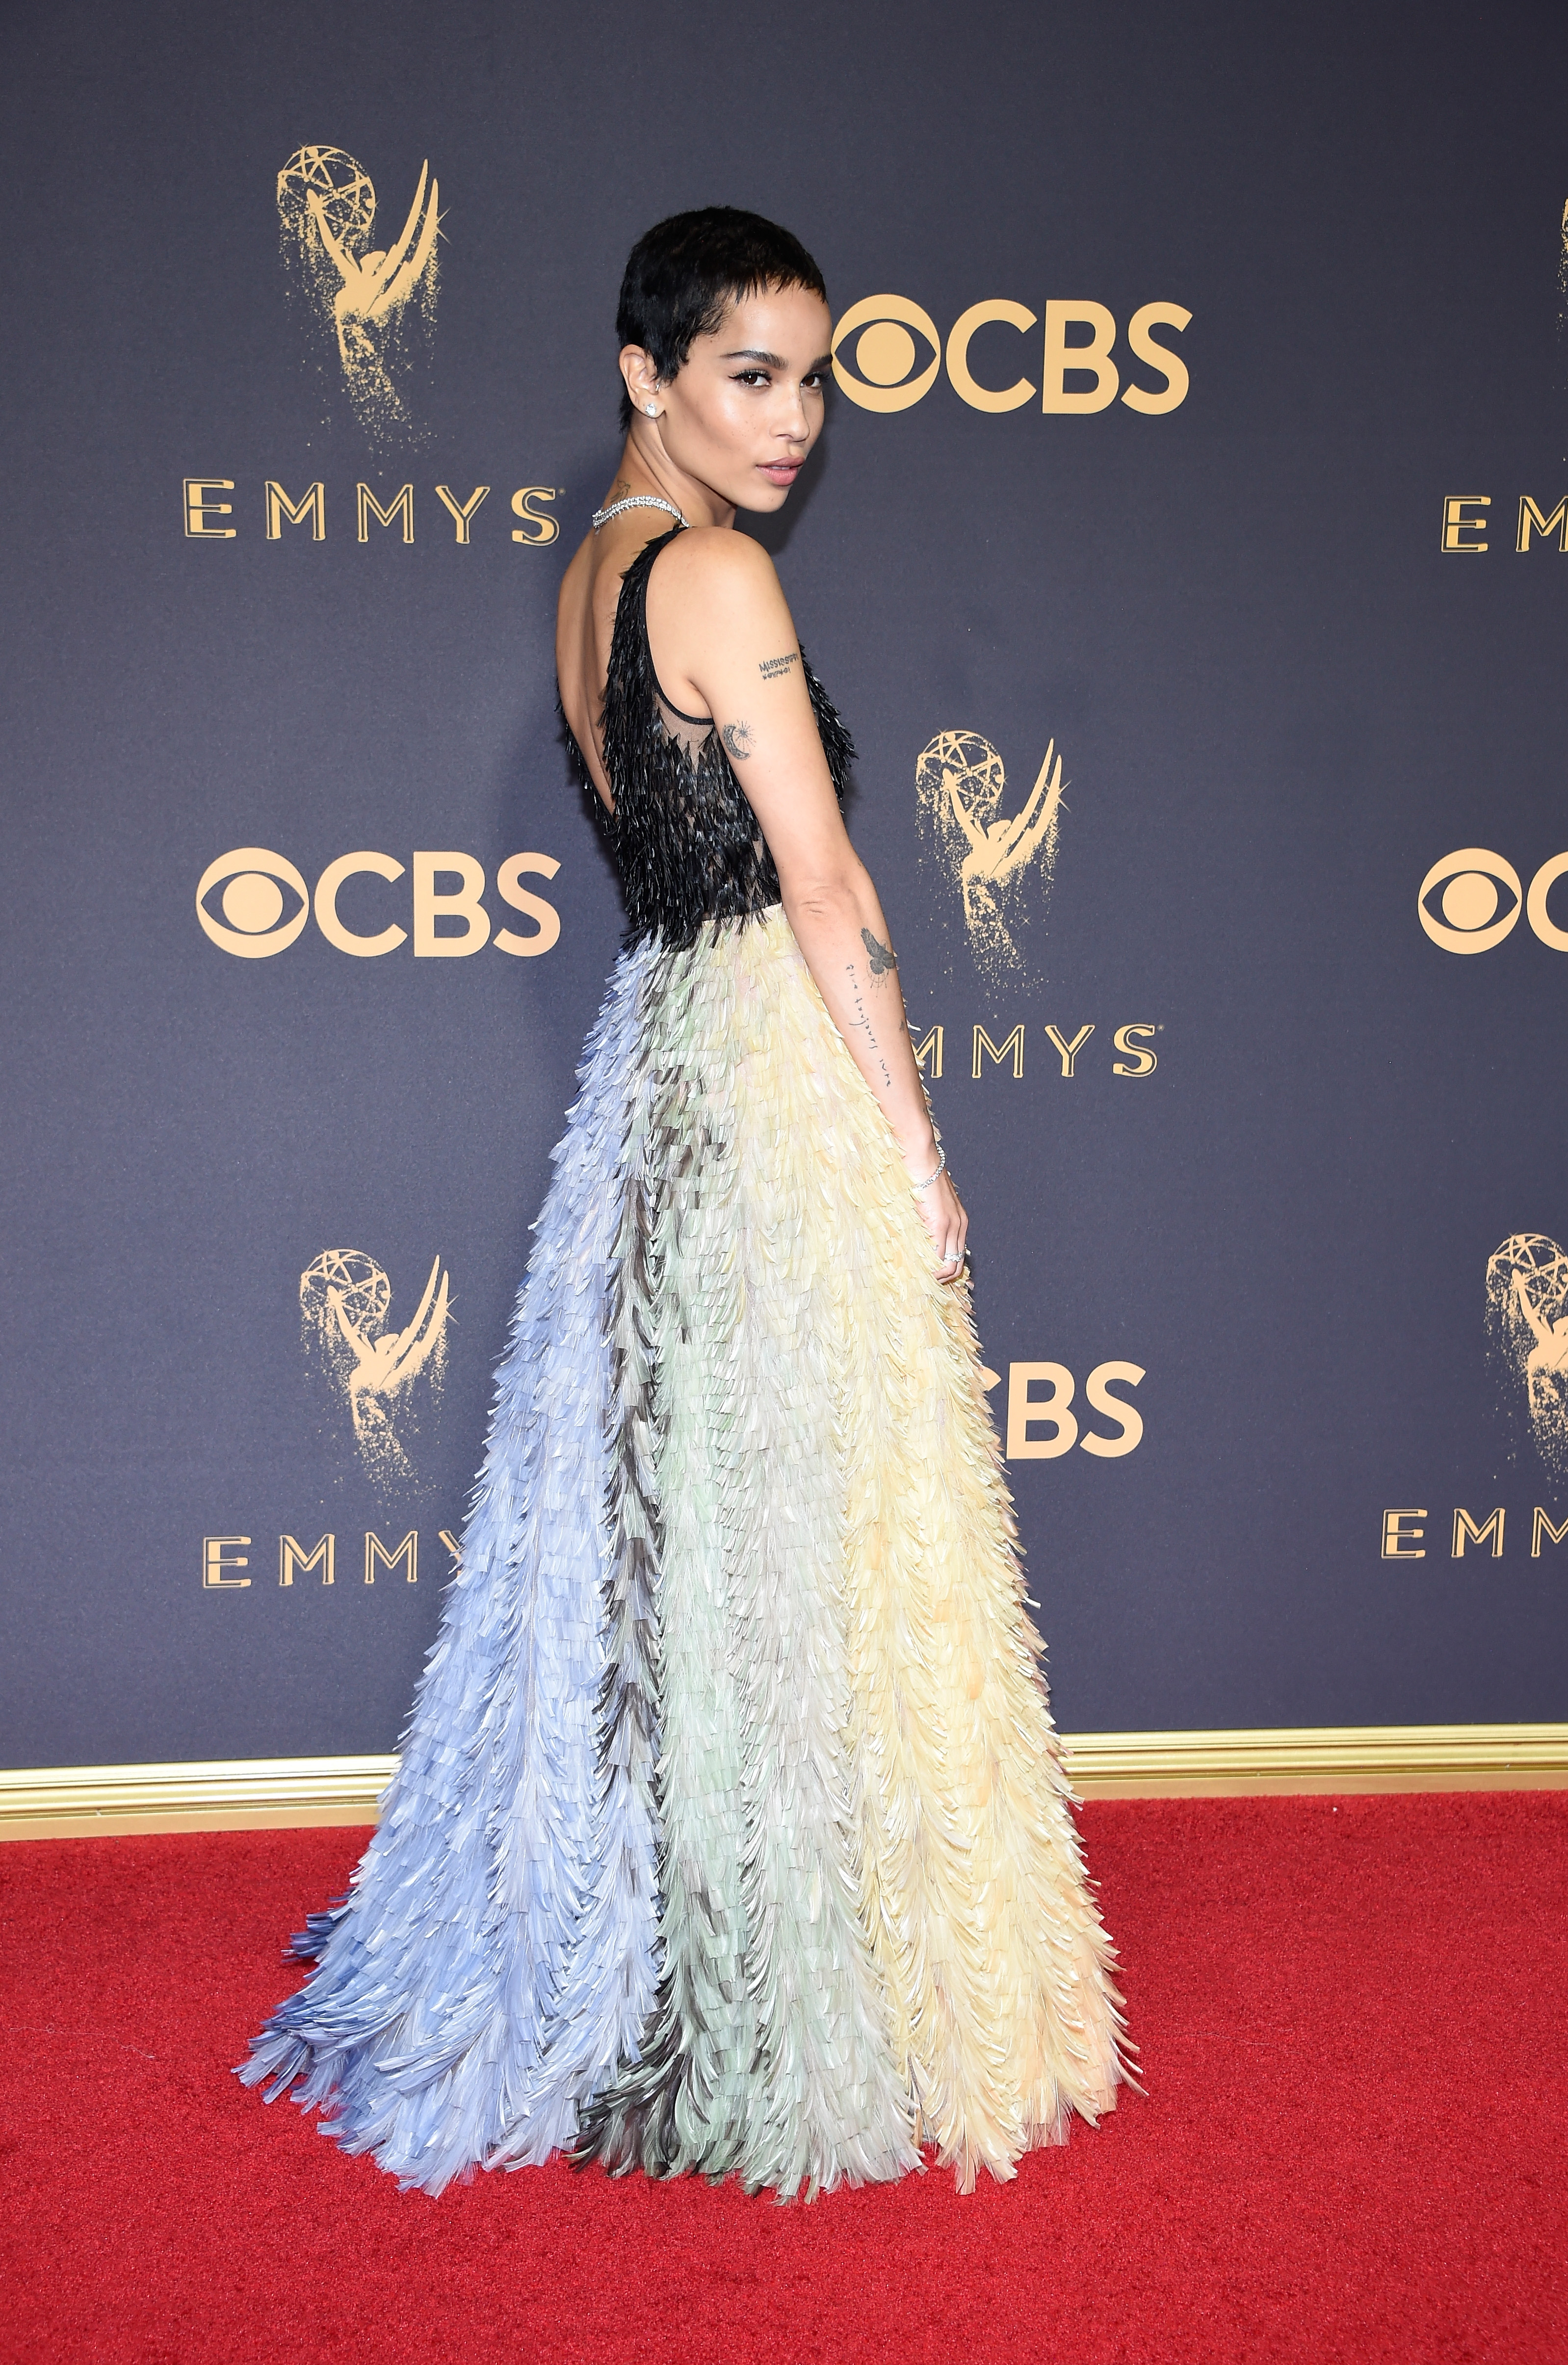 "<p>On the red carpet fashion rankings <a href=""http://style.nine.com.au/2017/09/18/08/21/style_emmy-awards-2017-red-carpet"" target=""_blank"" draggable=""false"">the Emmy Awards </a>held annually to celebrate the best  television  has to offer, sits somewhere between the Logies and the Oscars. </p> <p>This year Australian actresses Nicole Kidman and<em> The Handmaid's Tale</em> star  Yvonne Strahovskiwon big in the sartorial stakes, while regular red carpet darlings Reese Witherspoon and Heidi Klum were on a fashion losing streak.</p> <p>We have rounded up the best and worst red carpet looks from this year's Emmy Awards.</p> <p>WIN<br /> Zoë Kravitz in Christian Dior haute couture<br /> <br /> </p>"